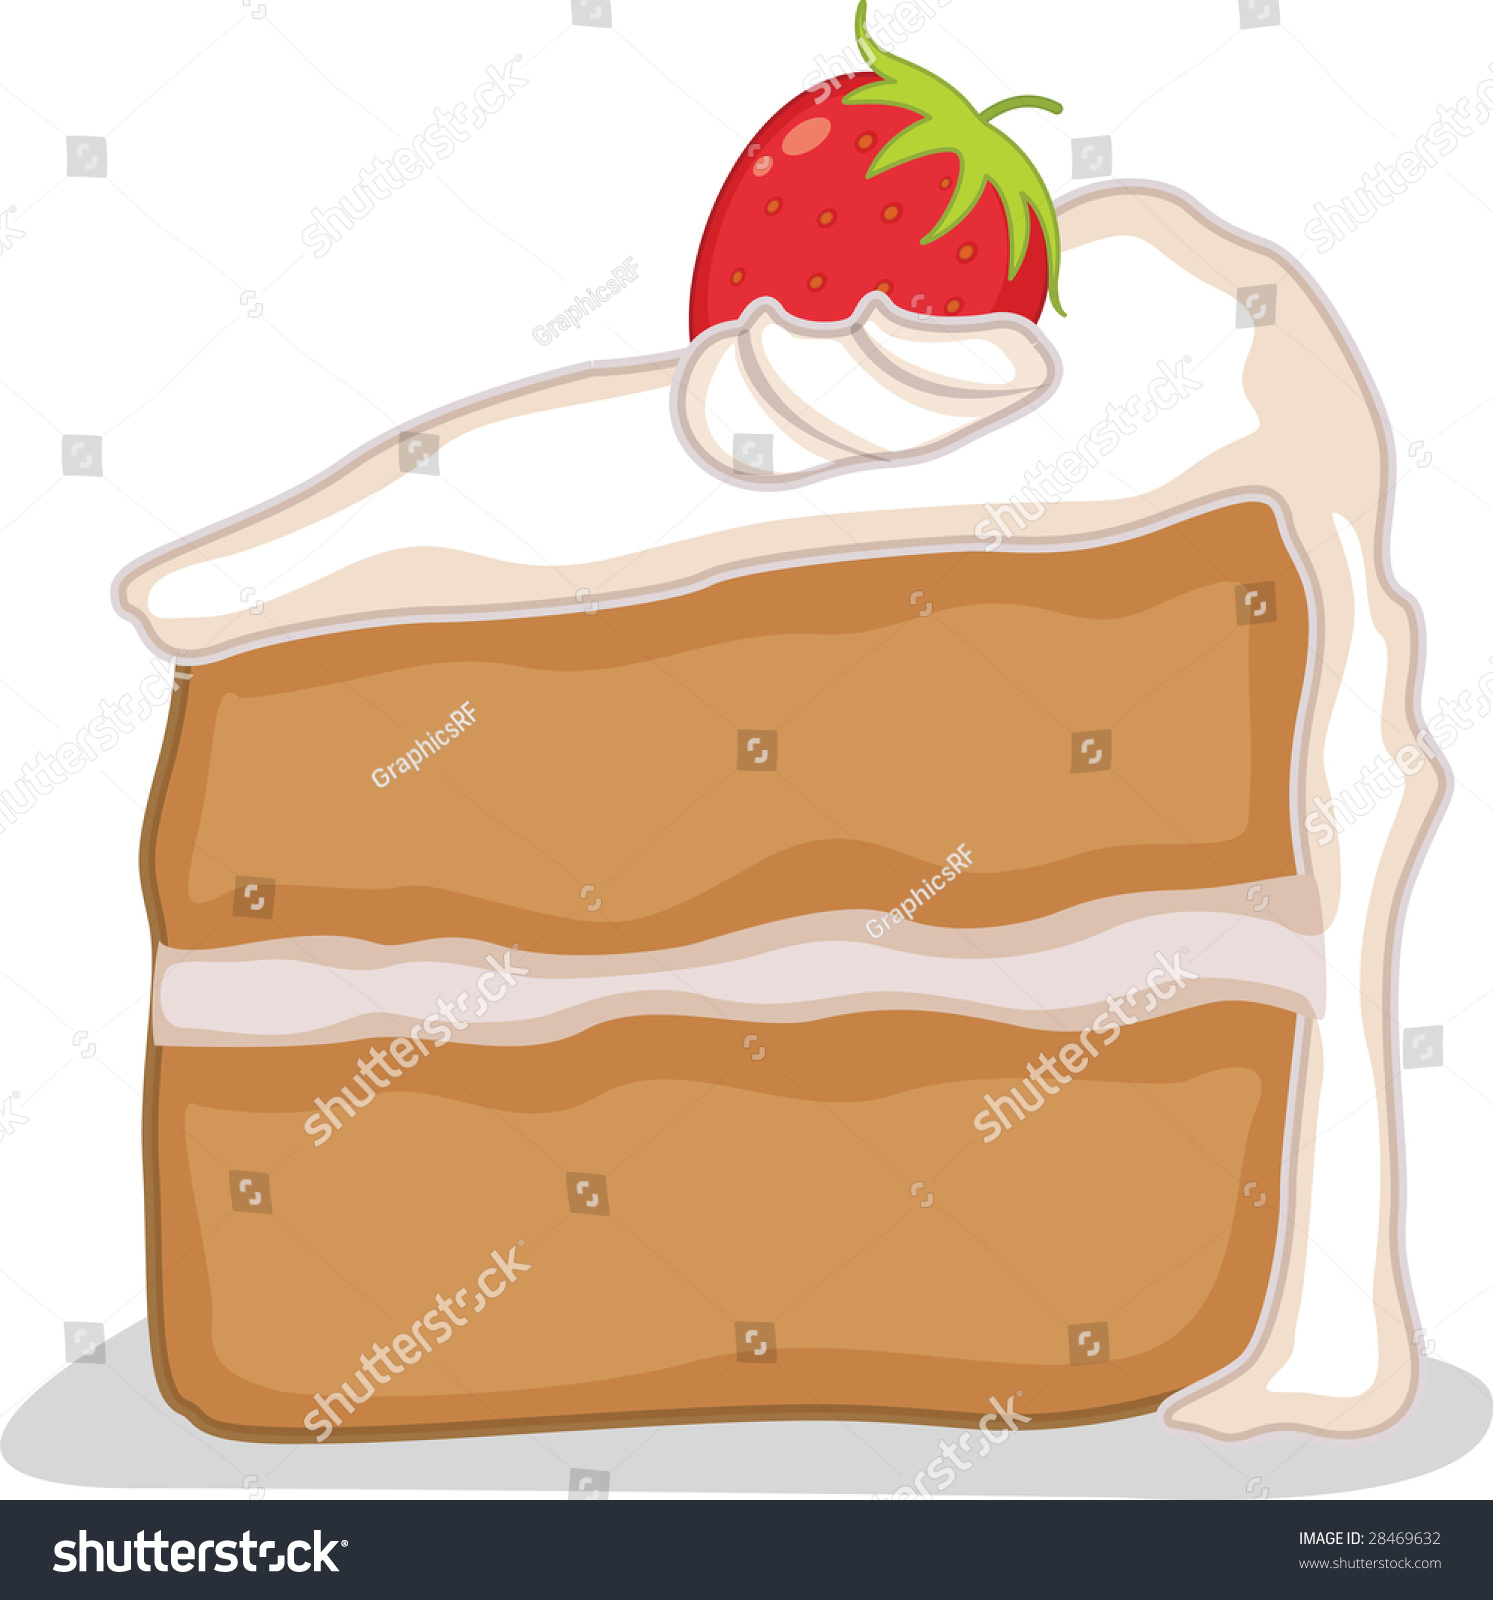 hight resolution of an illustration of a slice of cake